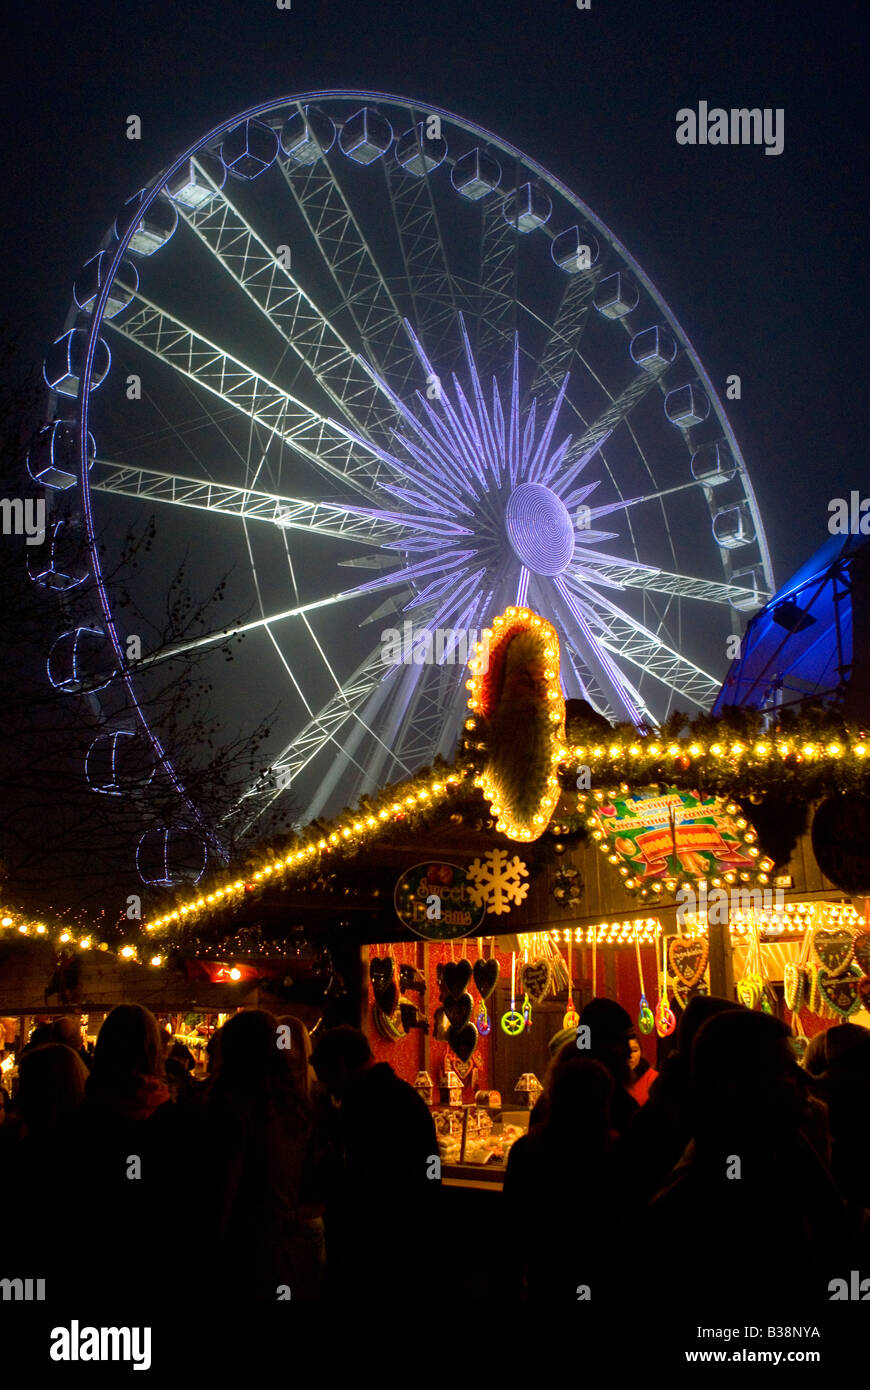 HYDE PARK LONDON CHRISTMAS TIME WINTER WONDERLAND CHRISTMAS MARKETS AND FUN FAIR RIDES - Stock Image